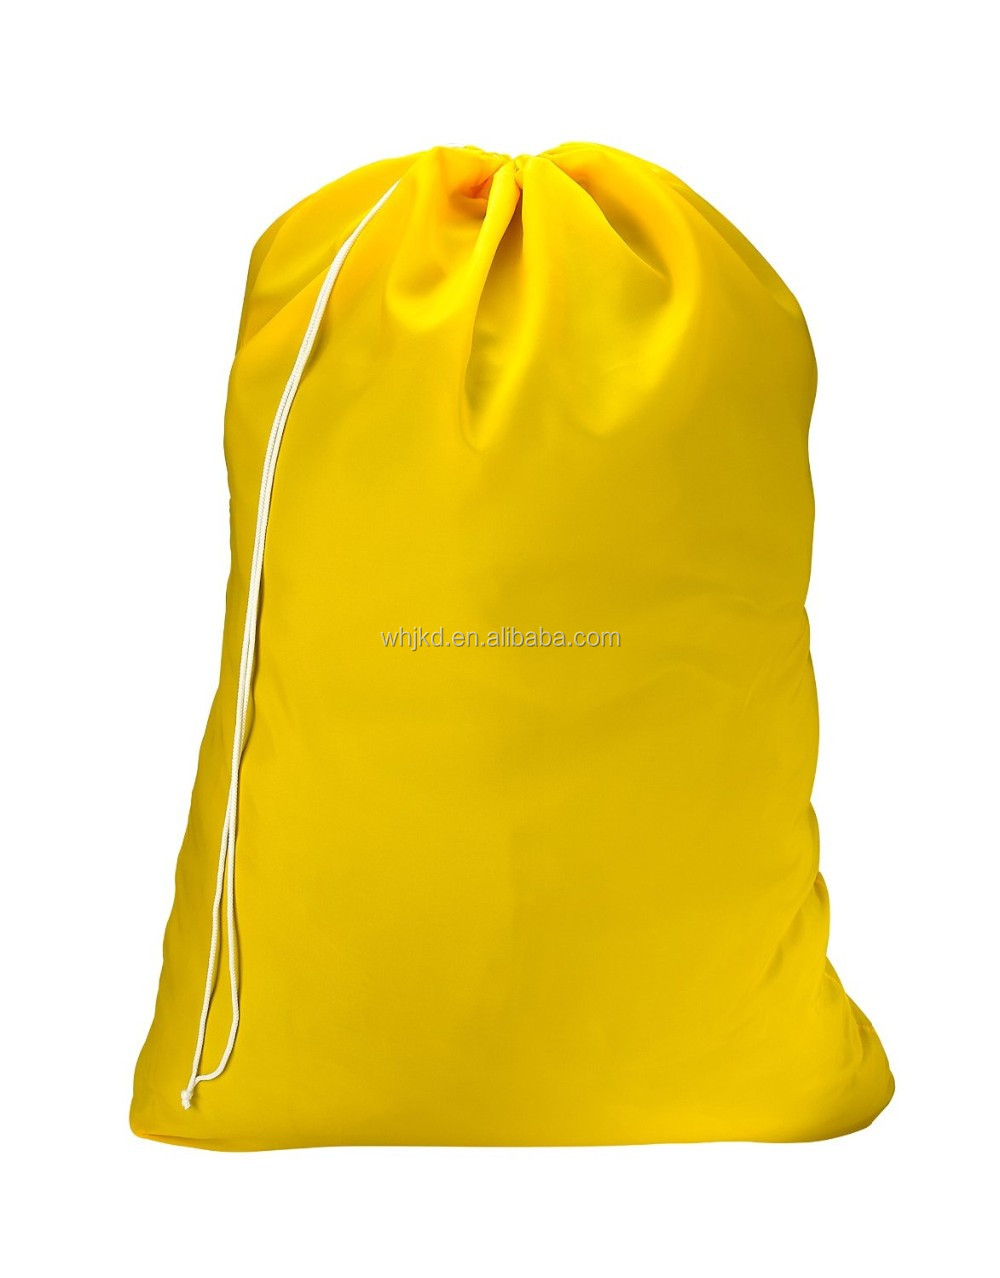 waterproof cheap dry cleaning nylon laundry bag